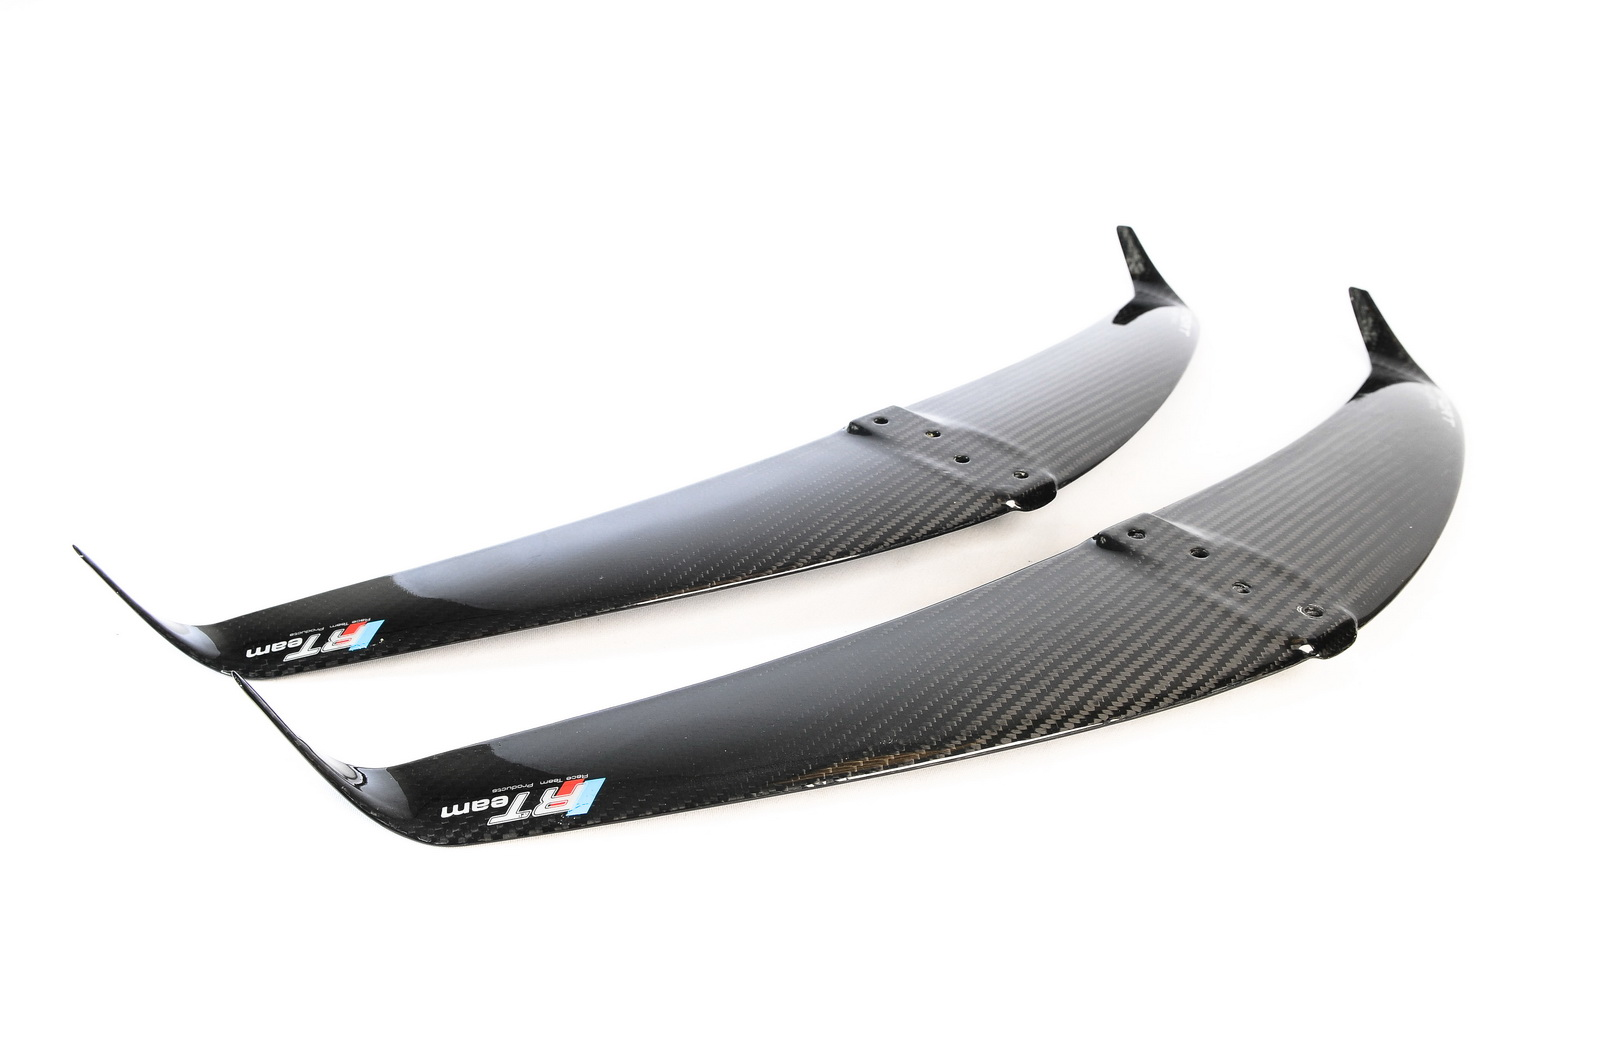 Kitefoil alpinefoil carbon wing rteam 10